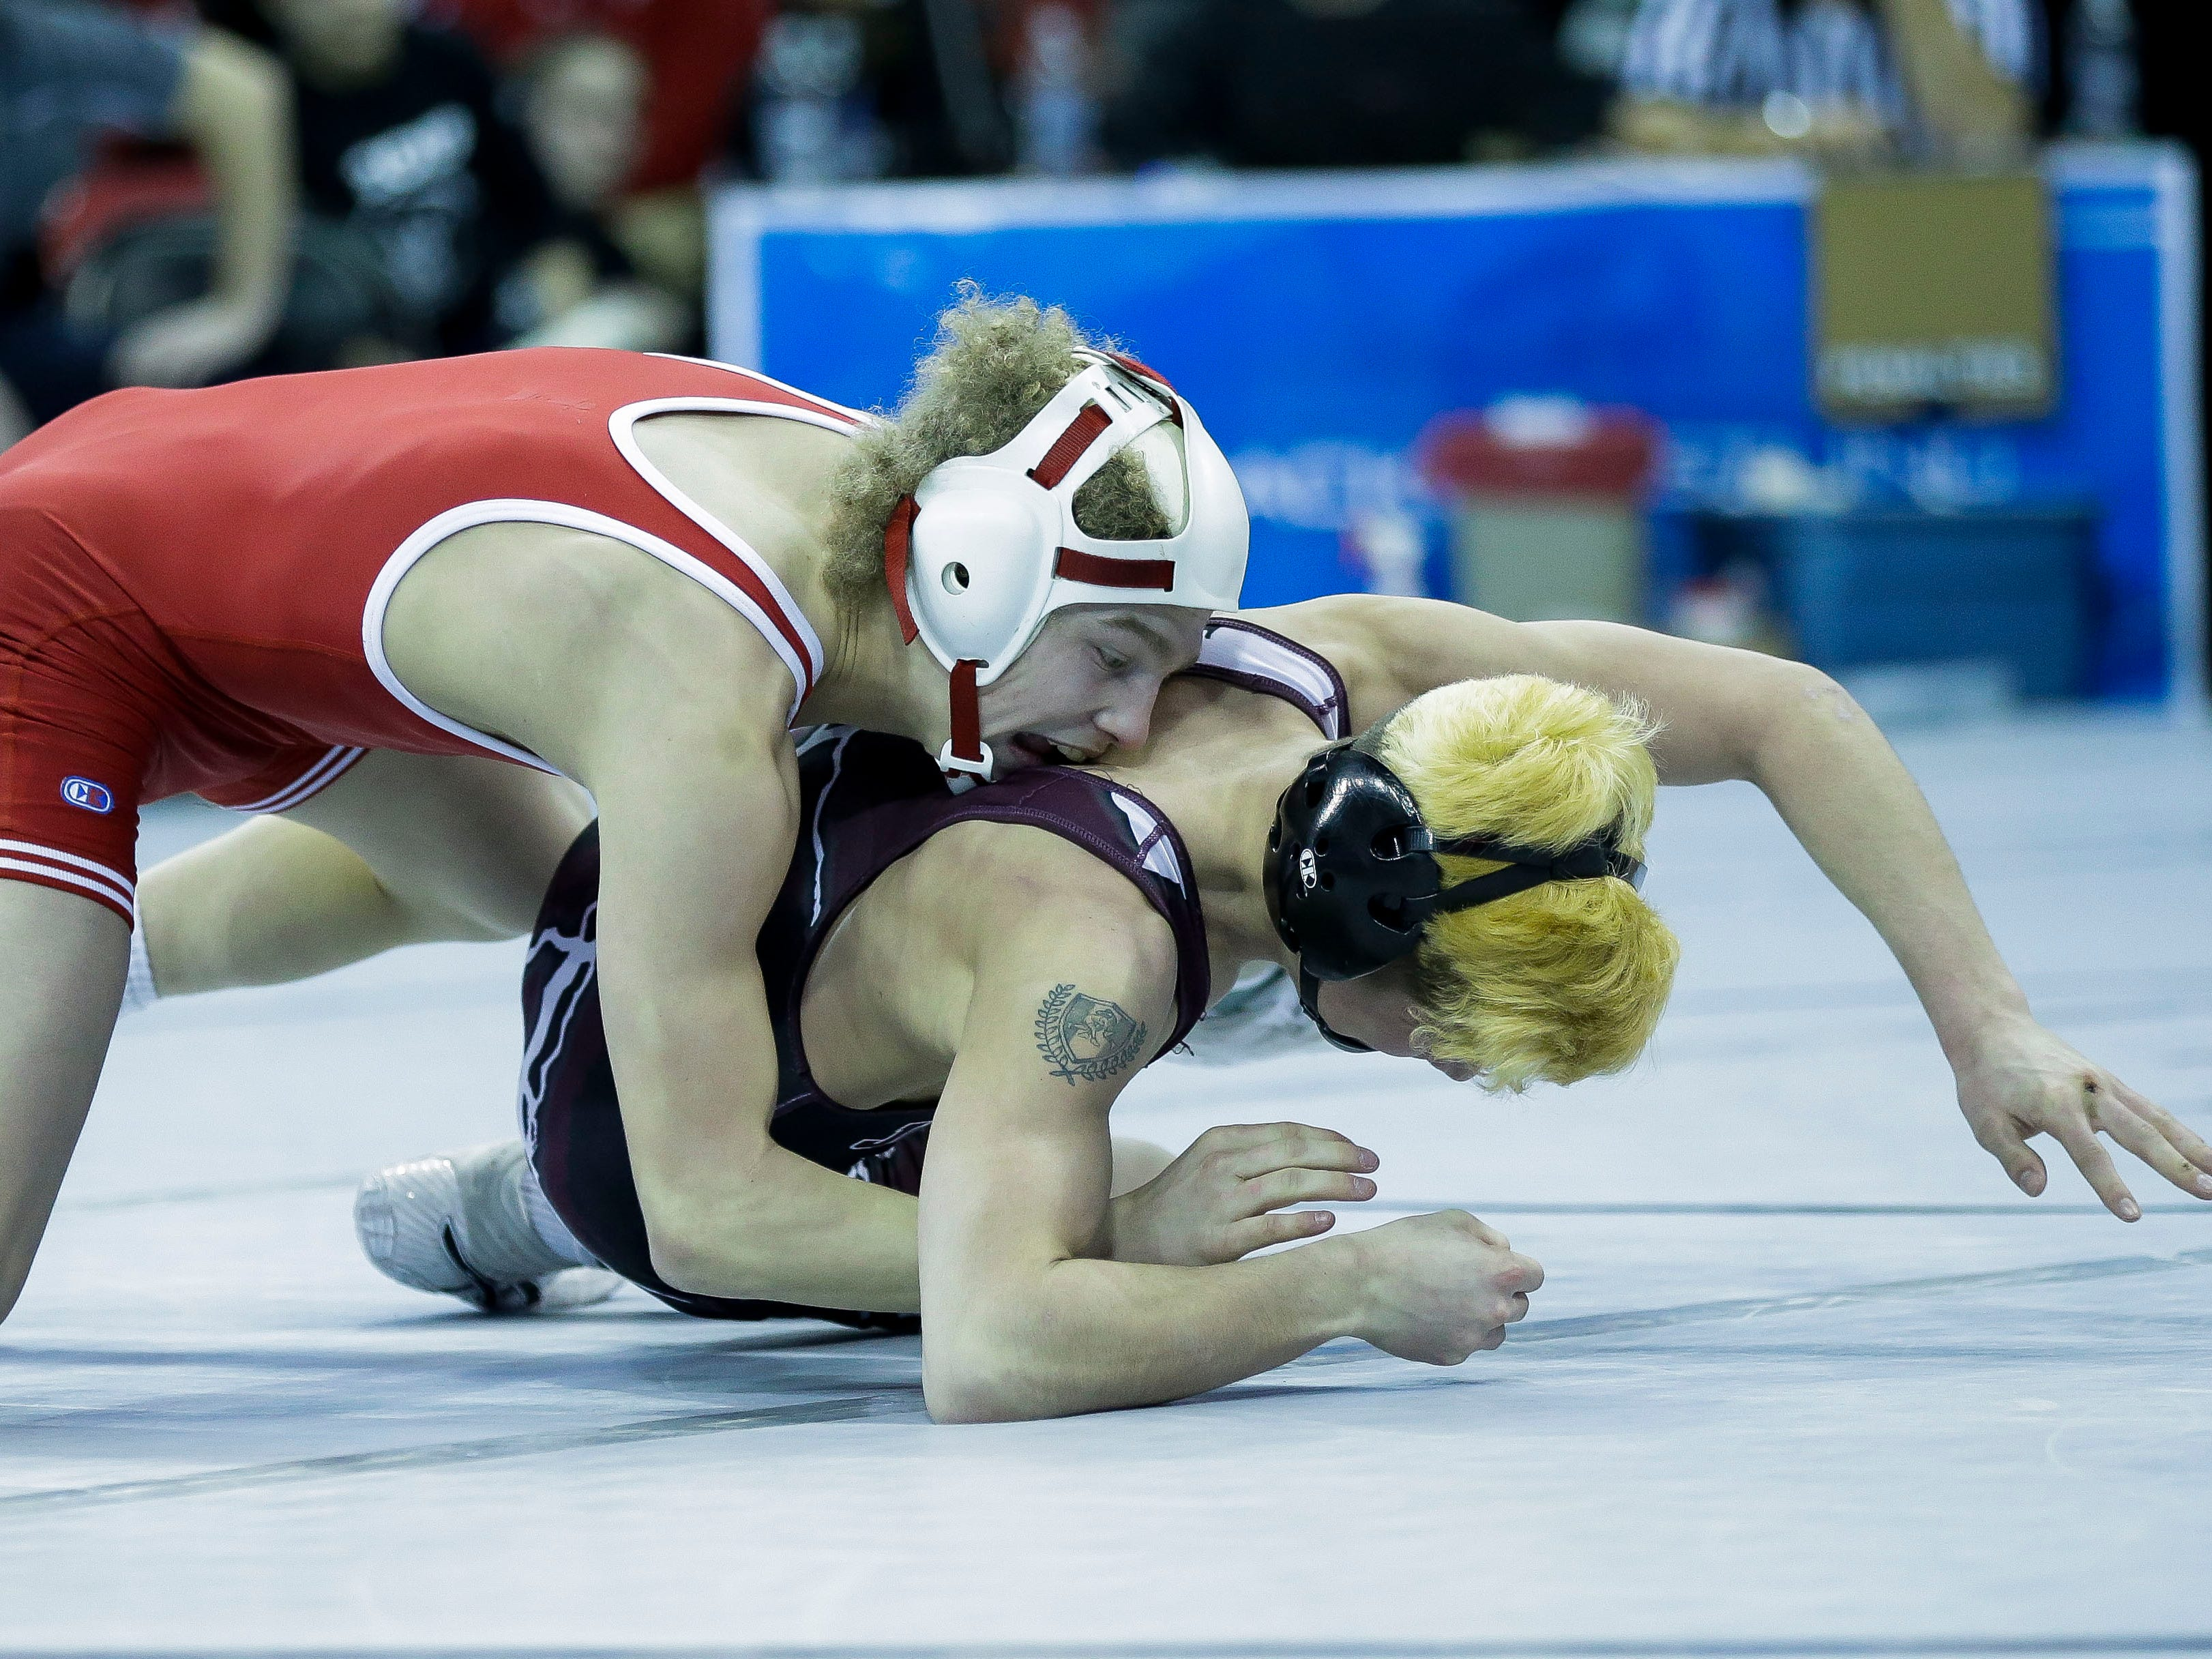 Spencer/Columbus Catholic's Treyton Ackman wrestles against Jefferson's Quintin Gehrmann in a Division 2 113-pound preliminary match during the WIAA state wrestling tournament on Thursday, February 21, 2019, at the Kohl Center in Madison, Wis.